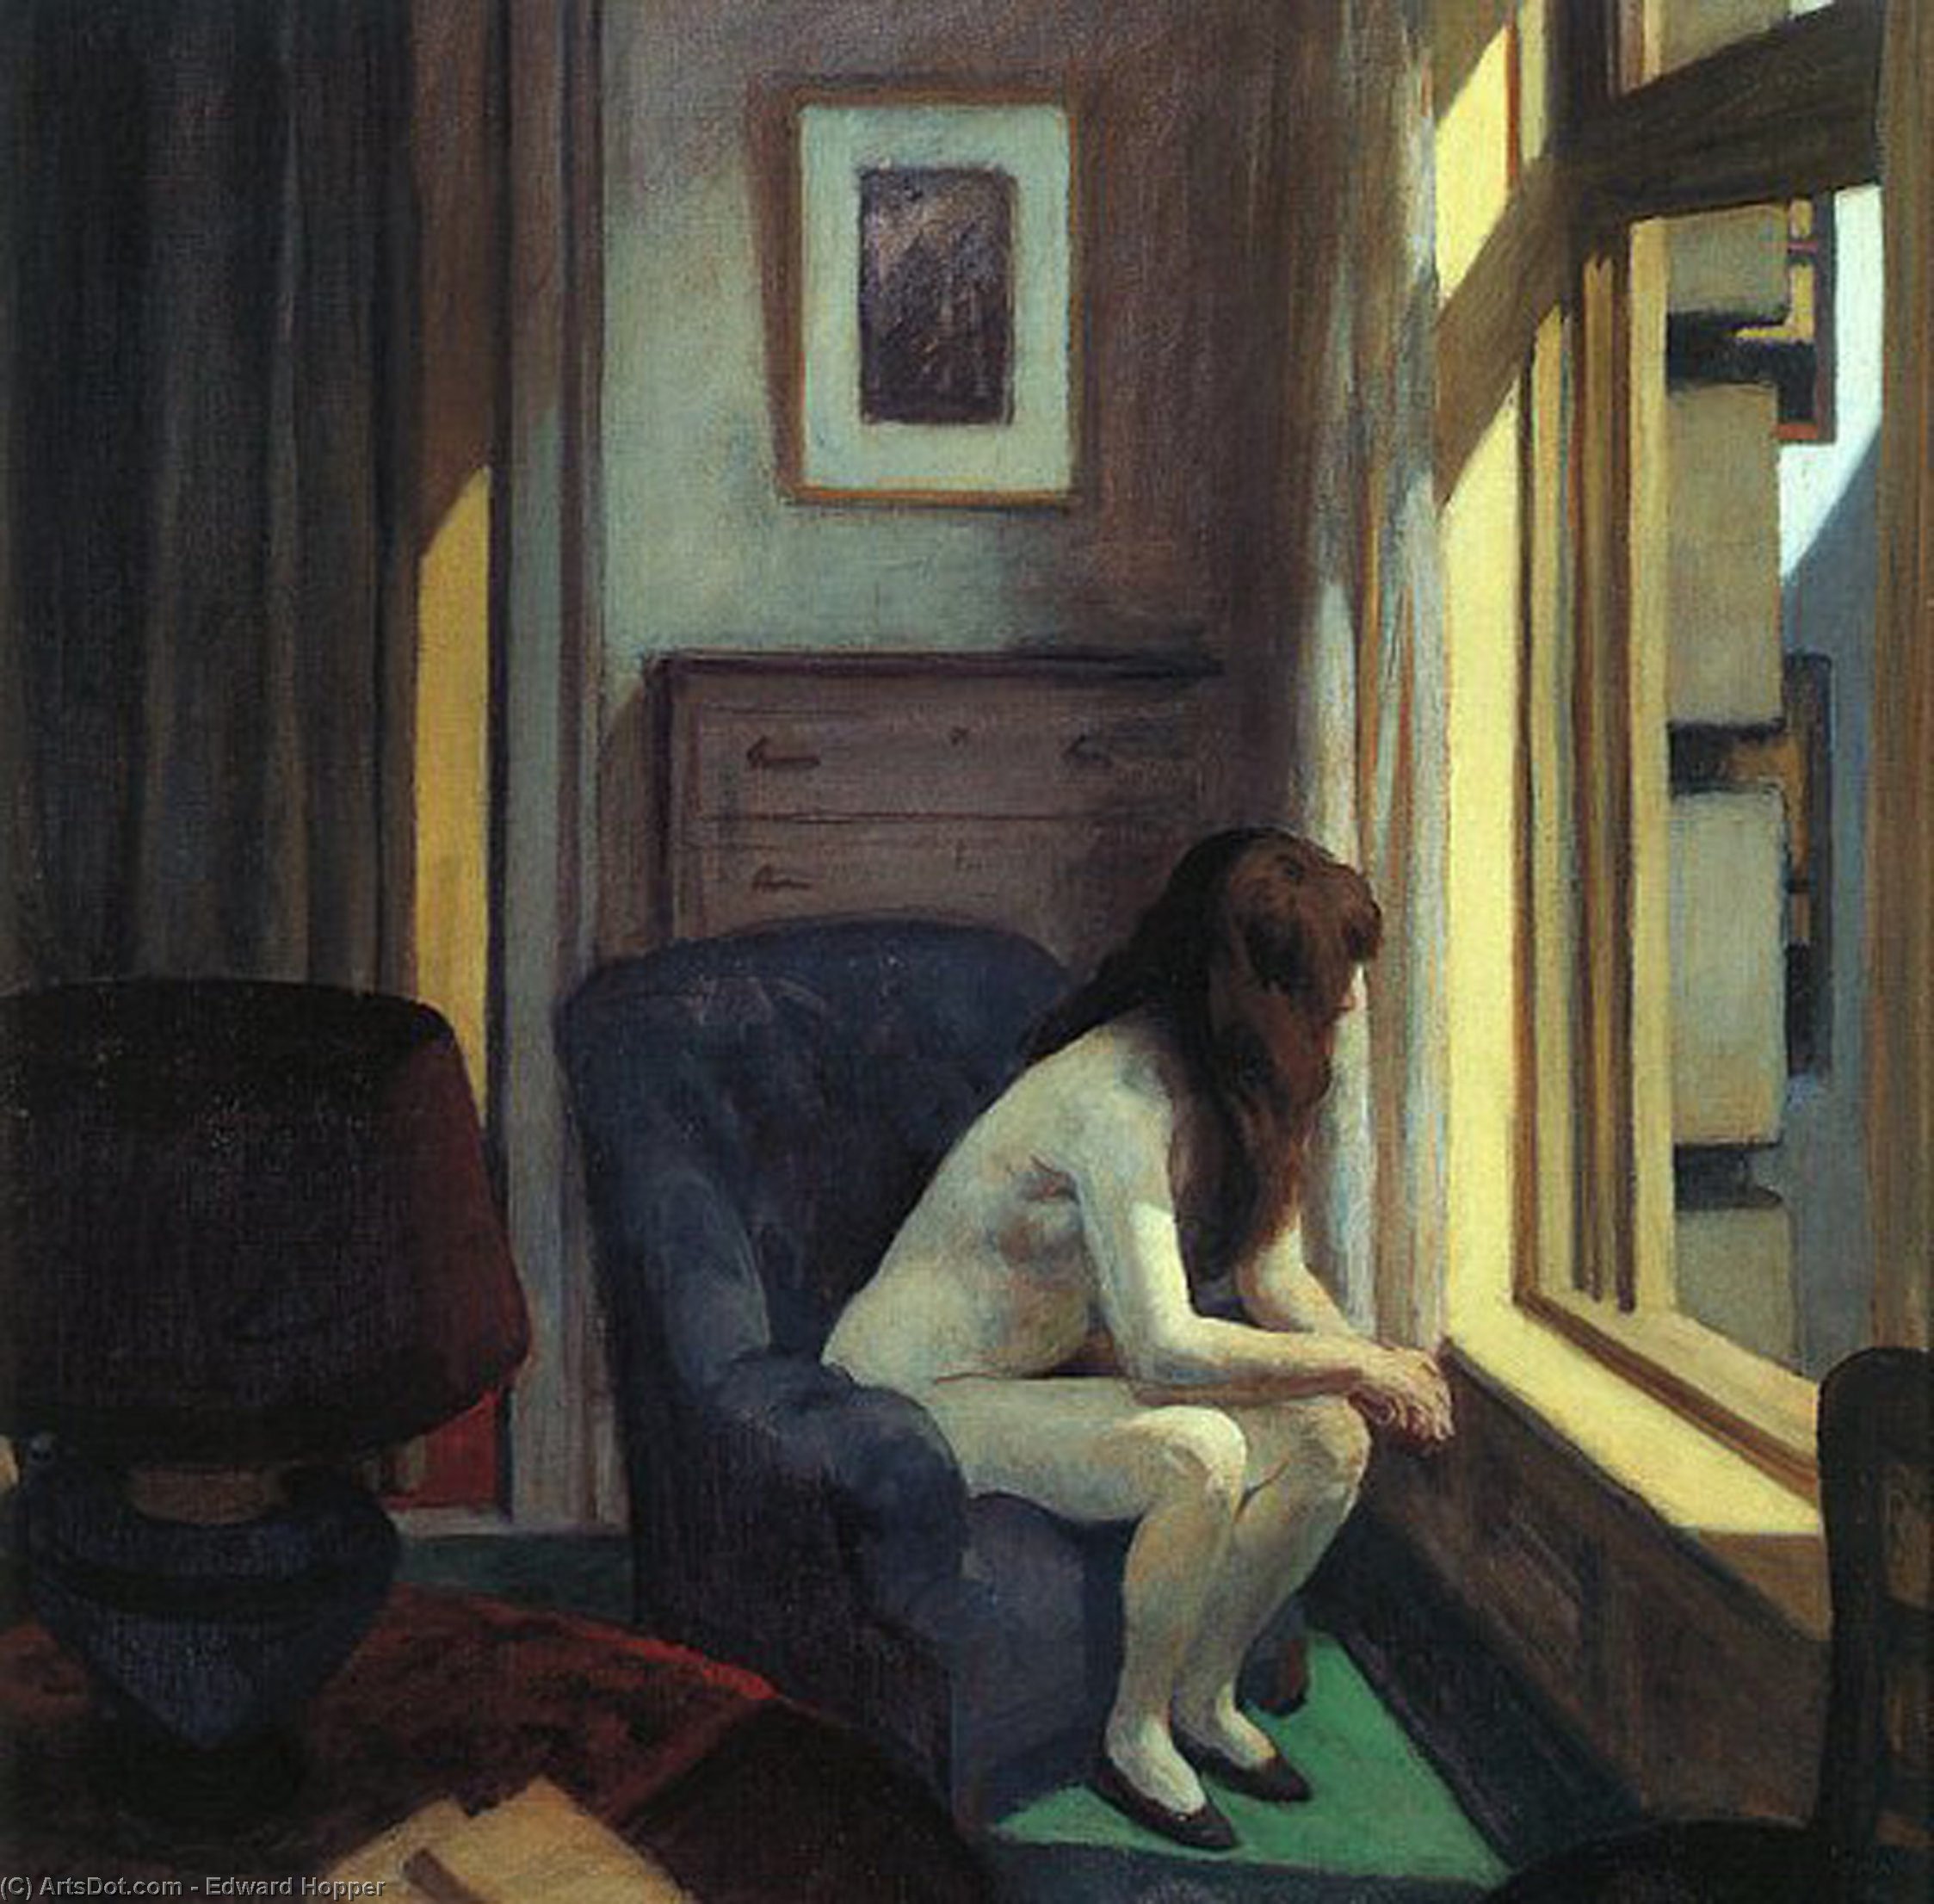 edward hopper story painting essay Edward hopper was a historian who used painting as his medium, instead of the written word, to depict 1940's american life in his home state, through nighthawks edward hopper techniques hopper used perspective in setting the scene for nighthawks, at an angled street corner allowing him.